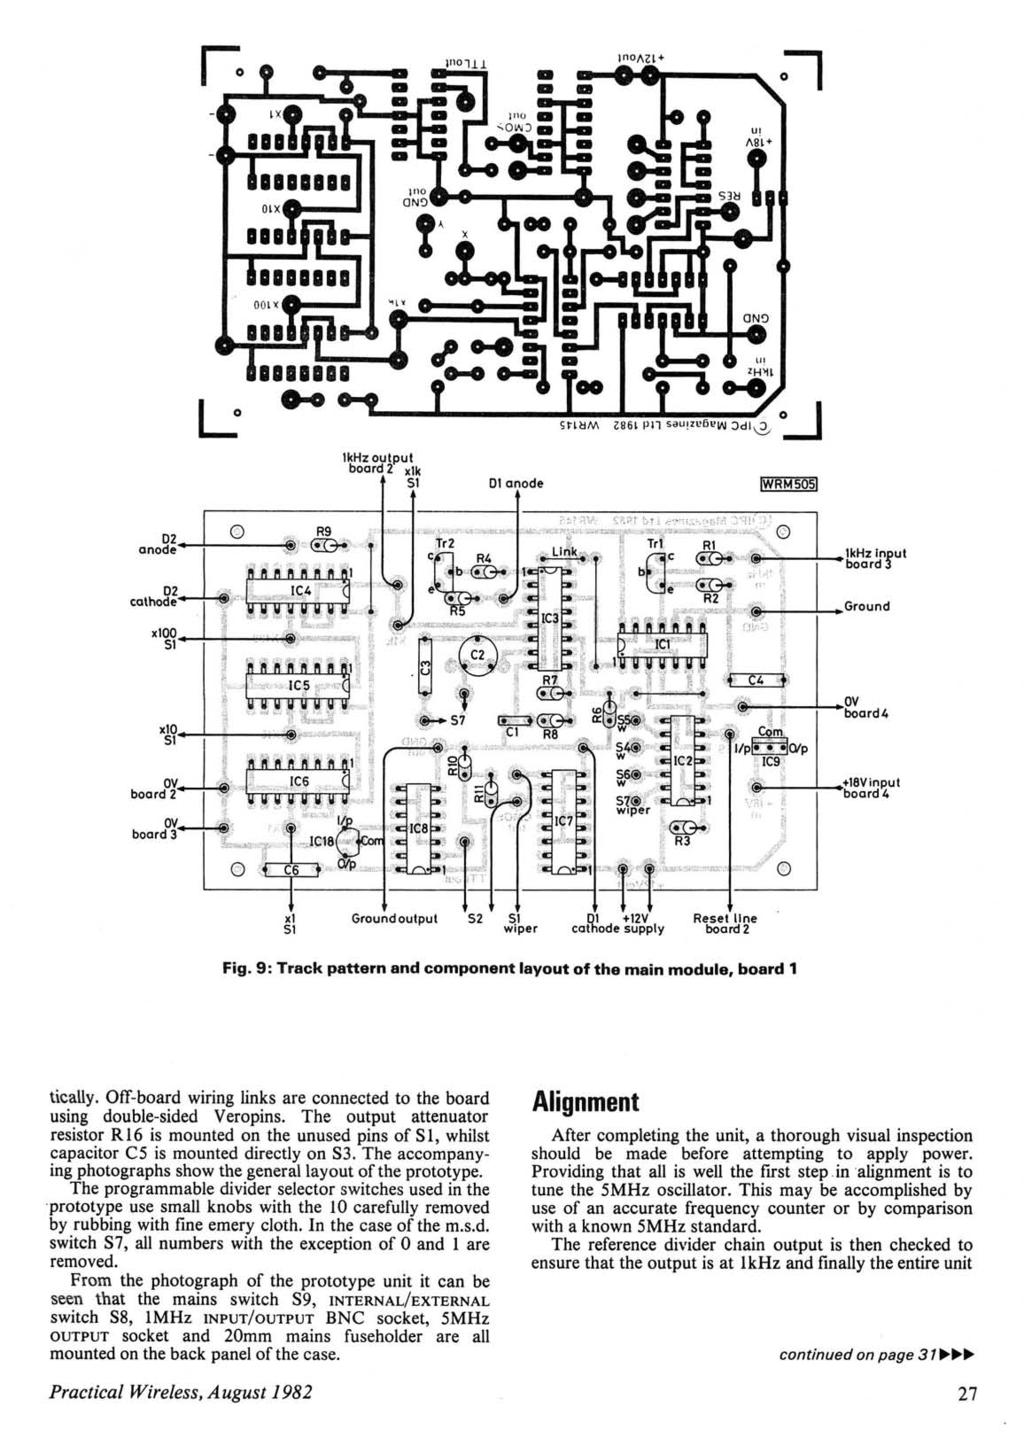 - - 1kHz output board 2 xlk 51 01 anode WRMSOS xl 51 51 wiper Reset line board 2 Fig. 9: Track pattern and component layout of the main module, board 1 tic ally.